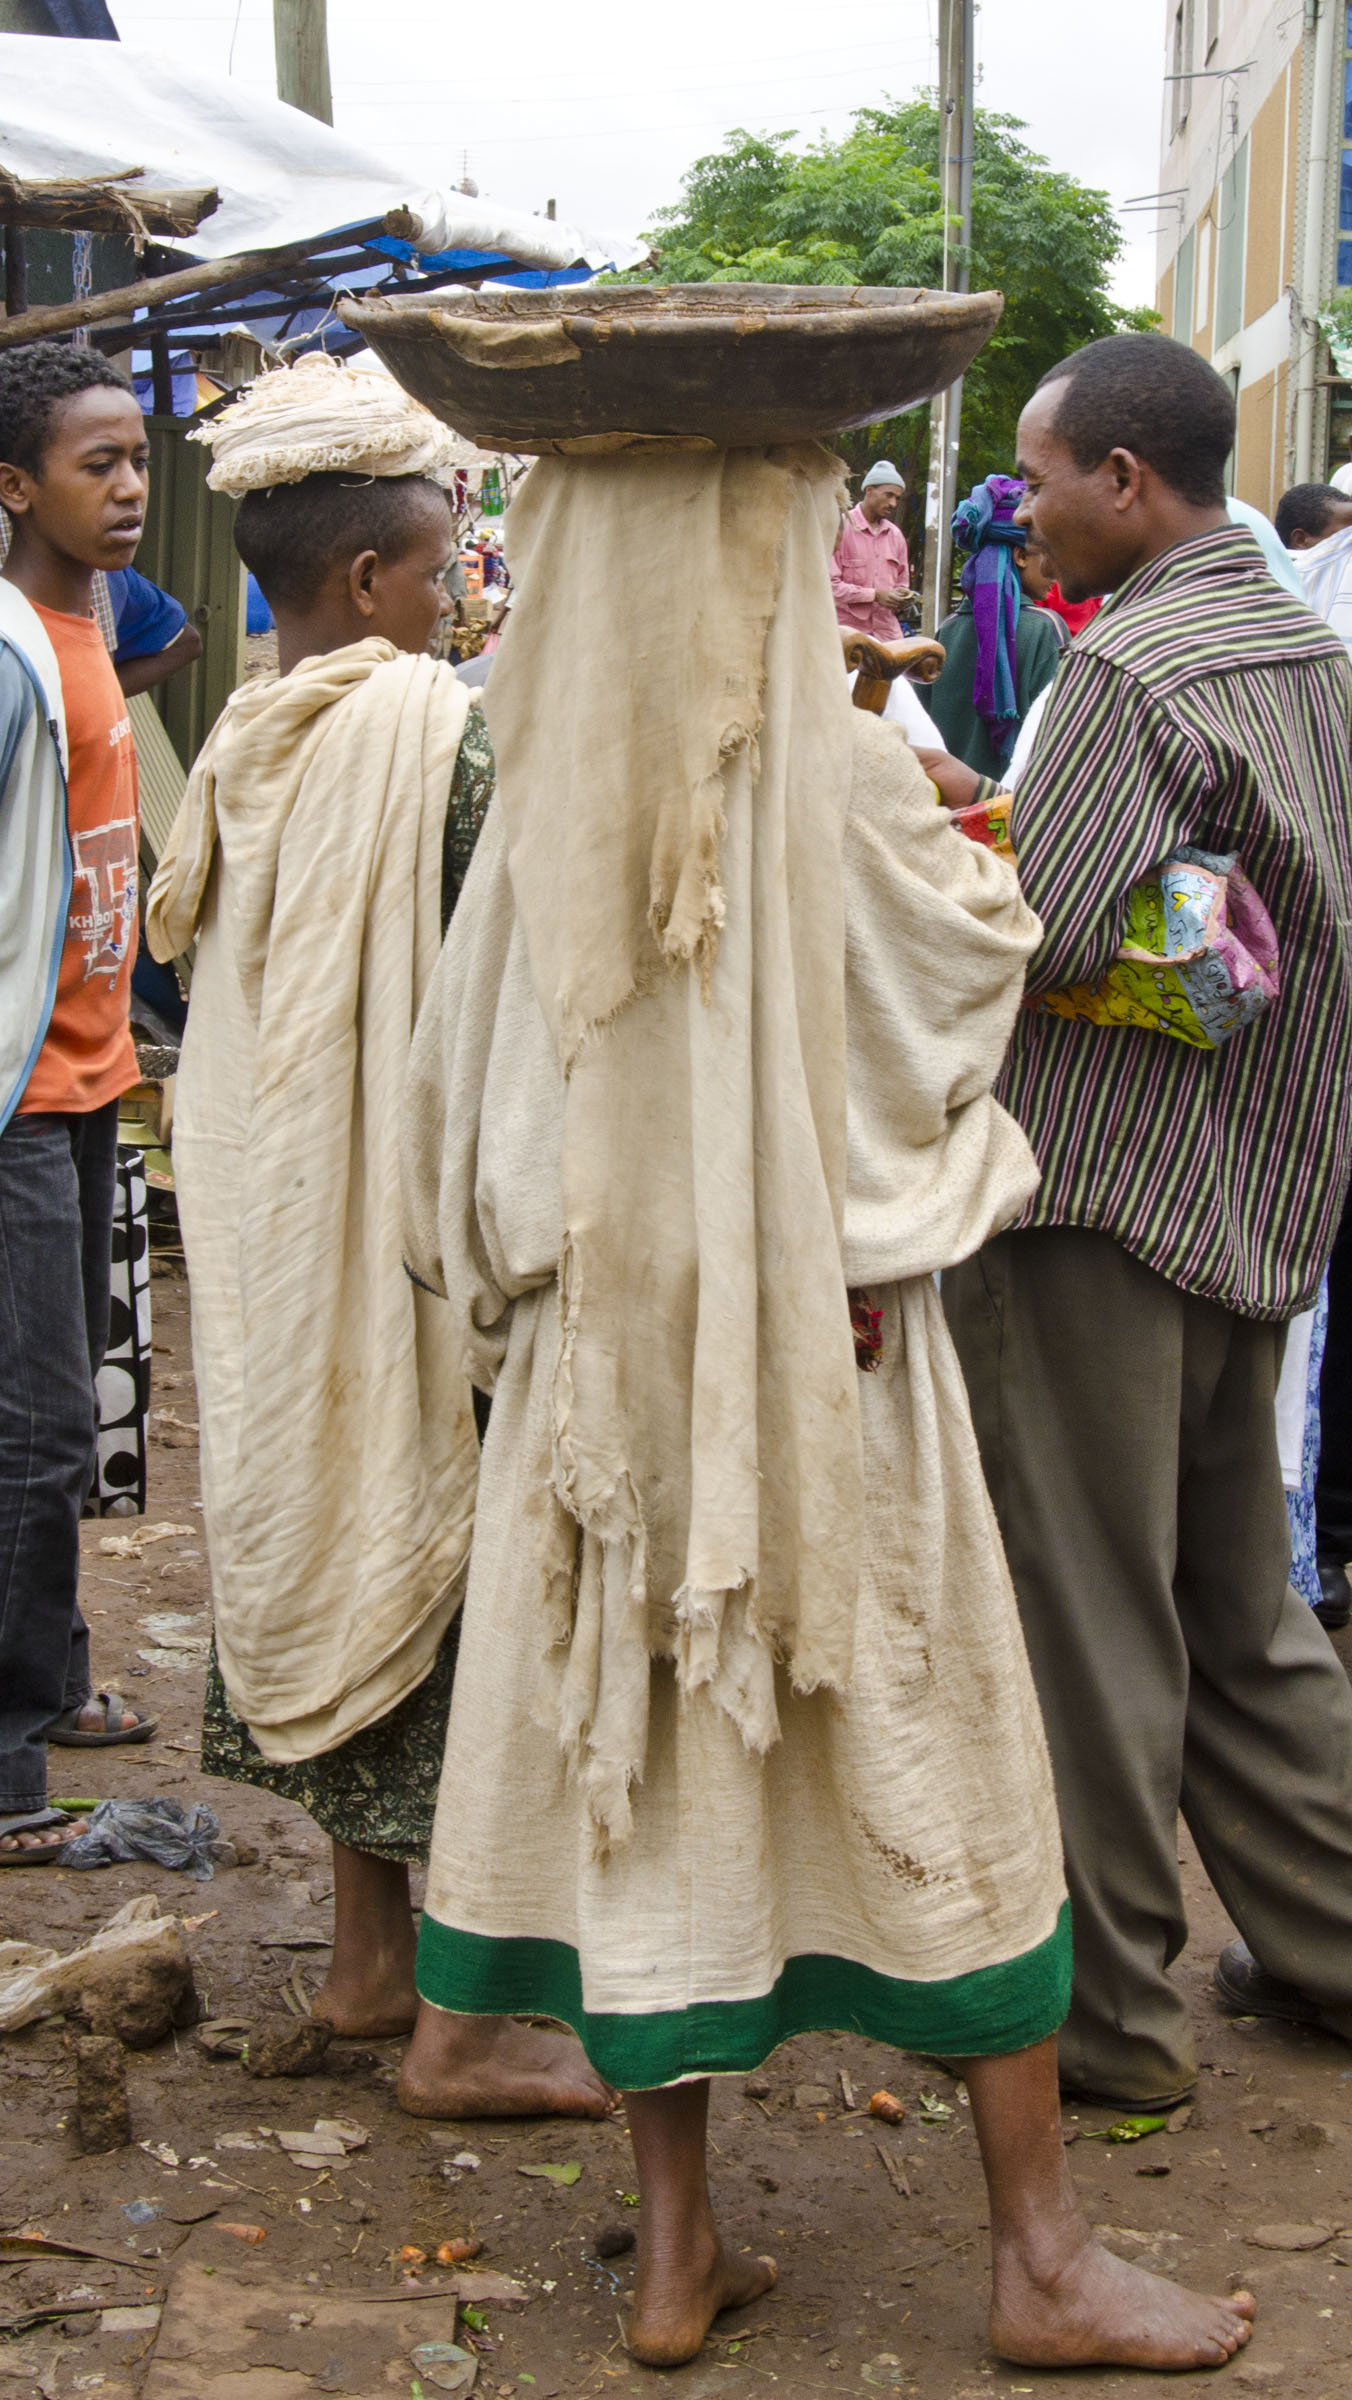 Ethiopian woman carrying wooden bowl on head